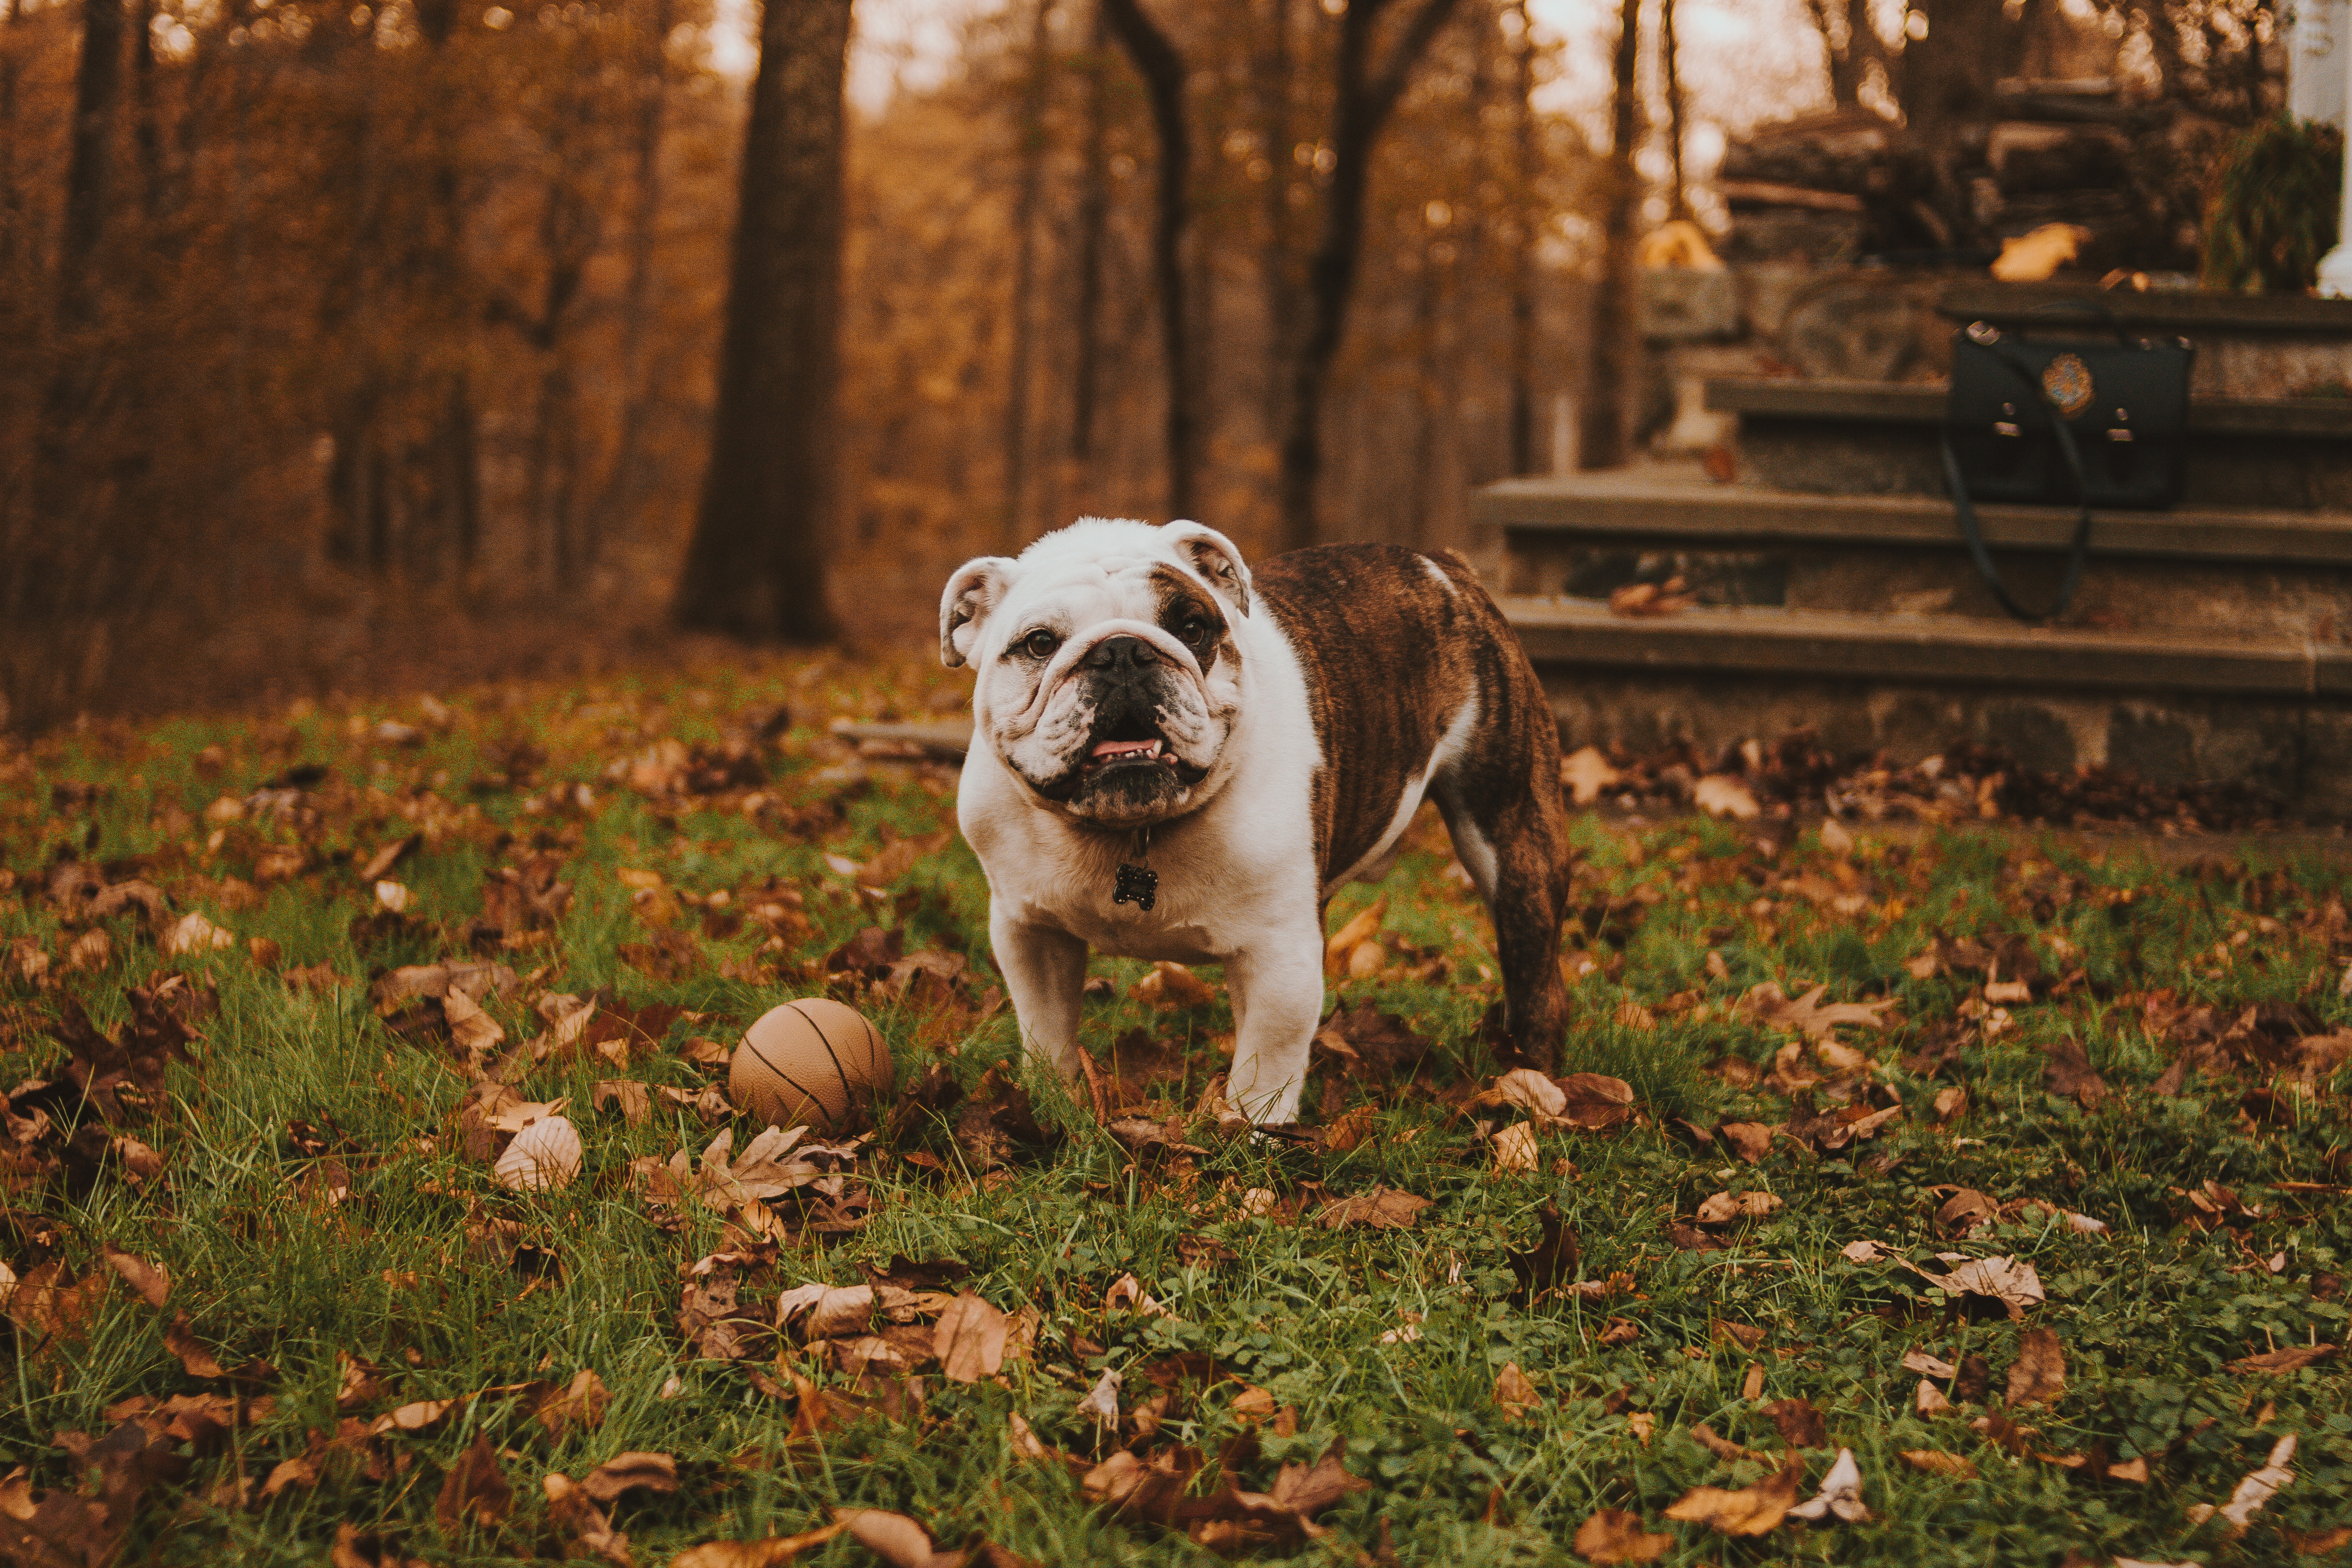 150560 download wallpaper Animals, Bulldog, Muzzle, Ball, Autumn, Grass screensavers and pictures for free